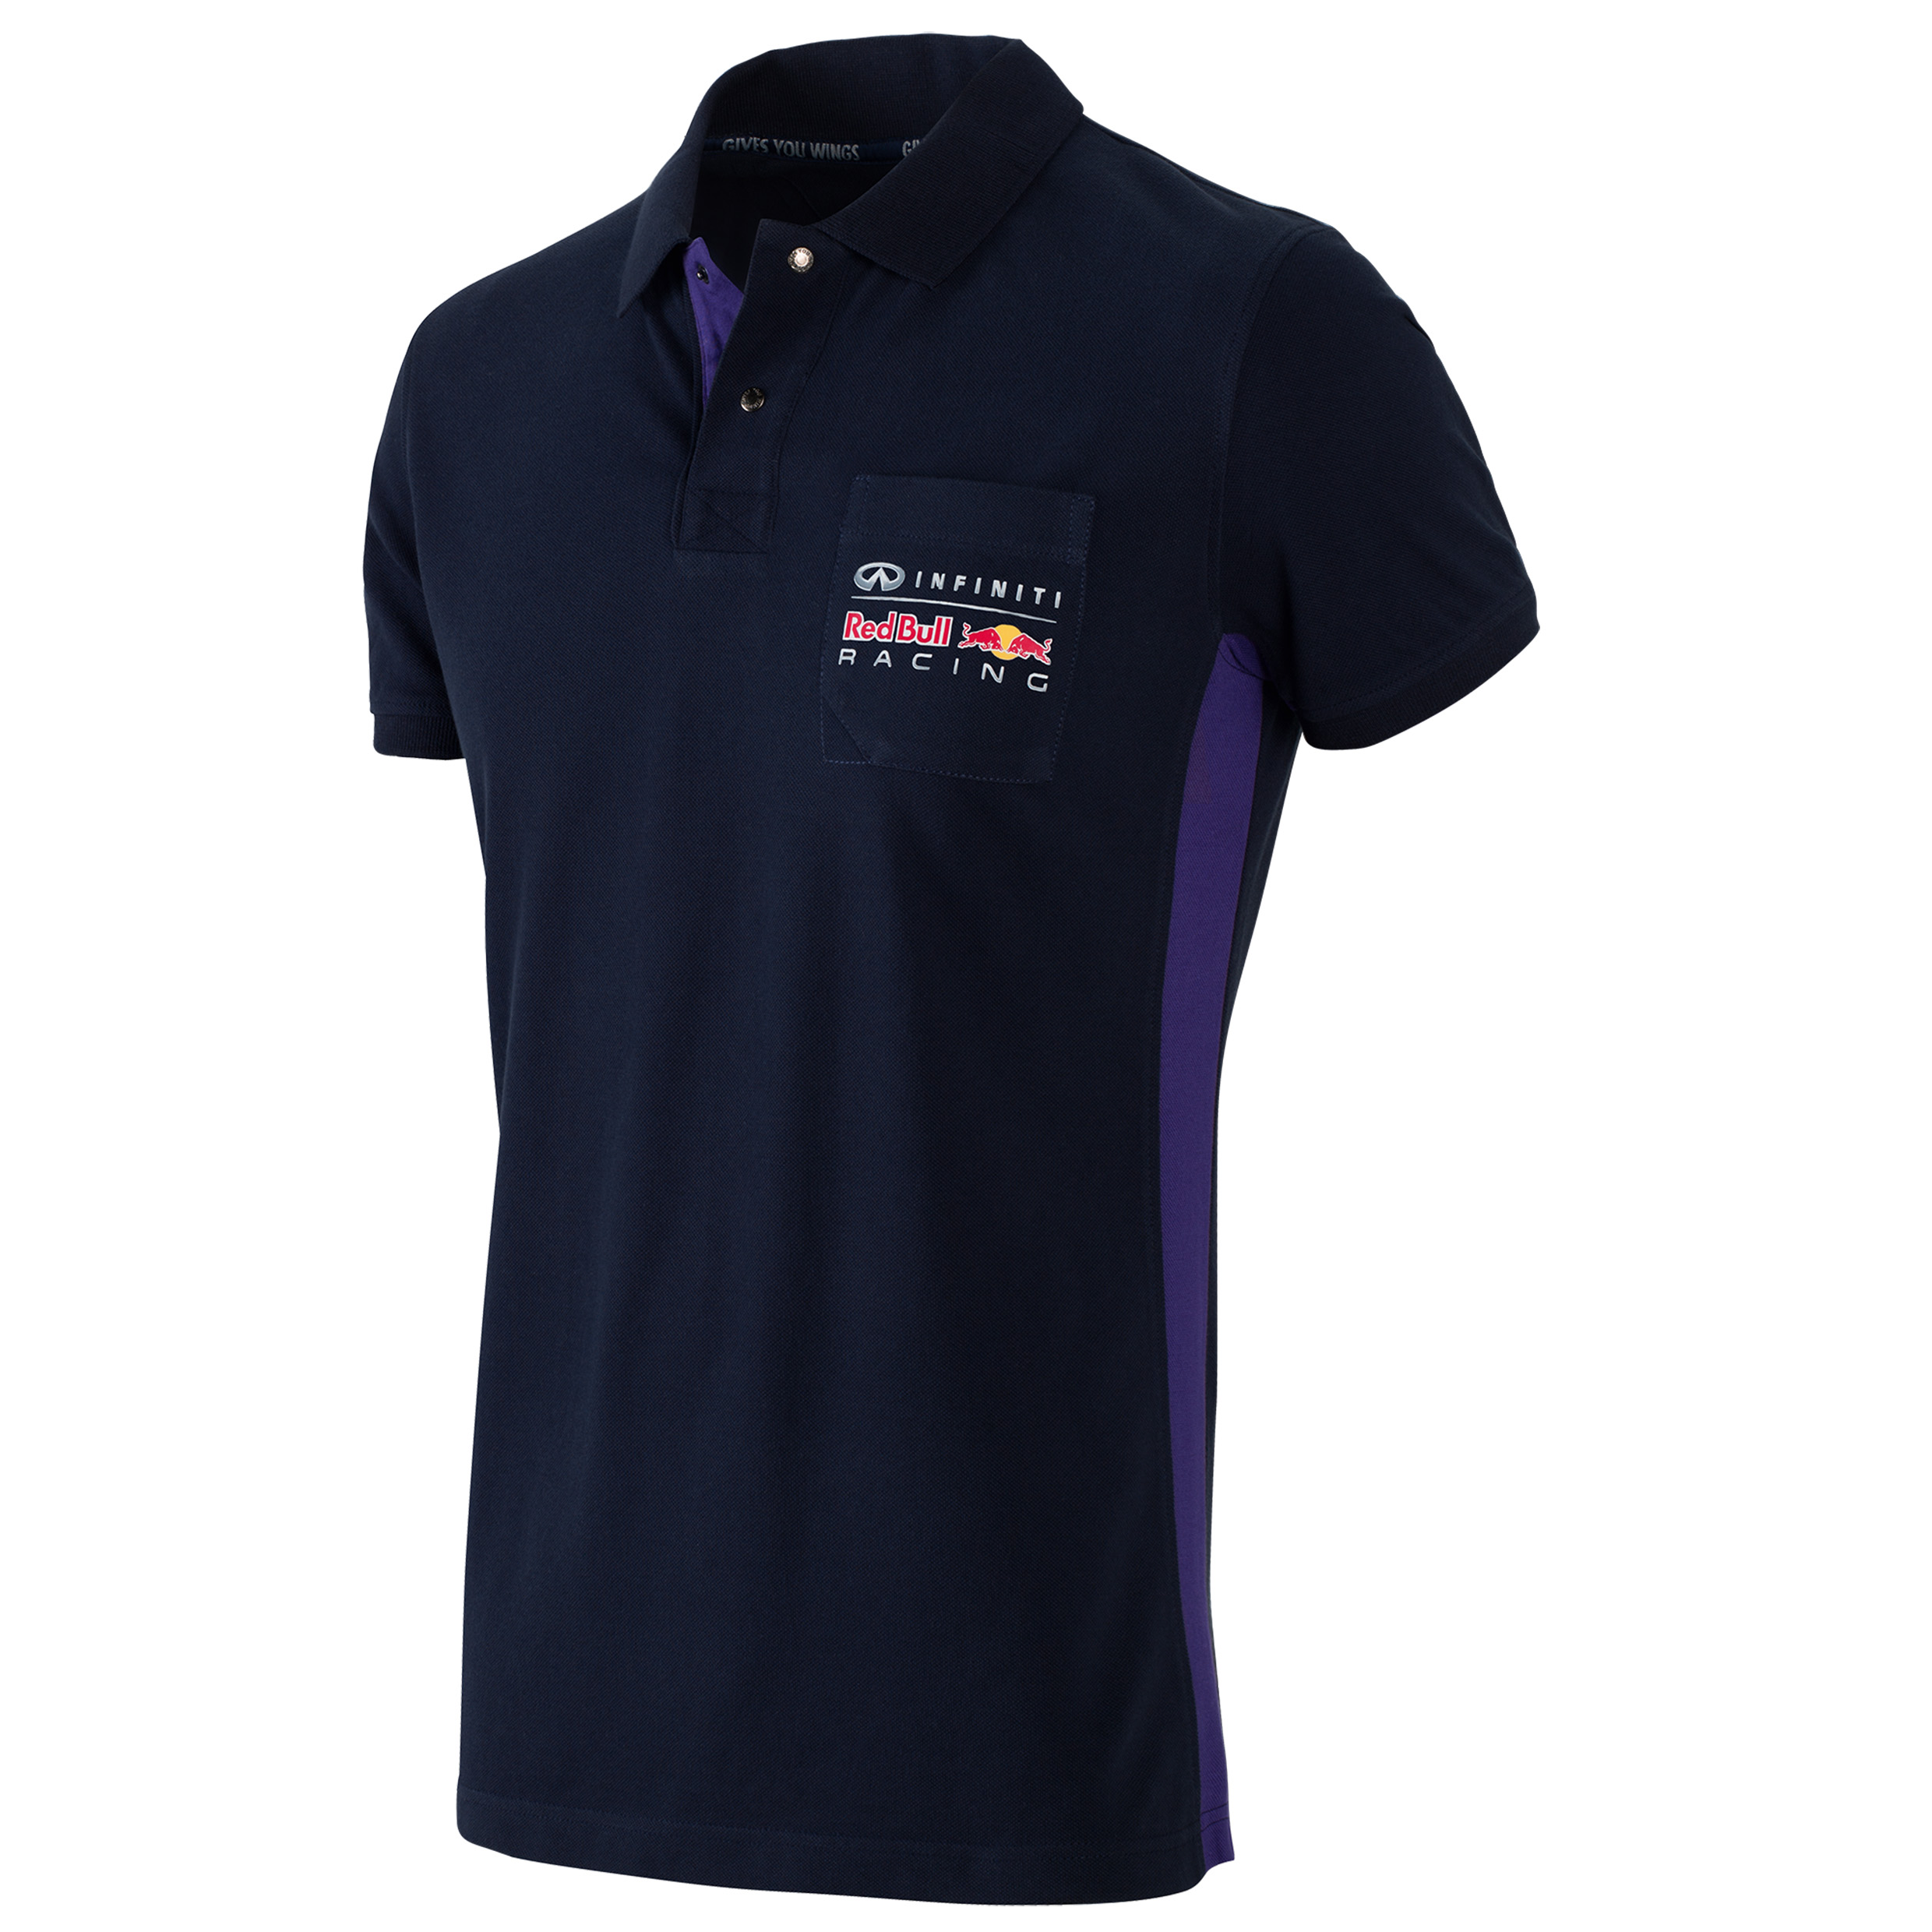 Infiniti Red Bull Racing Gives You Wings Polo